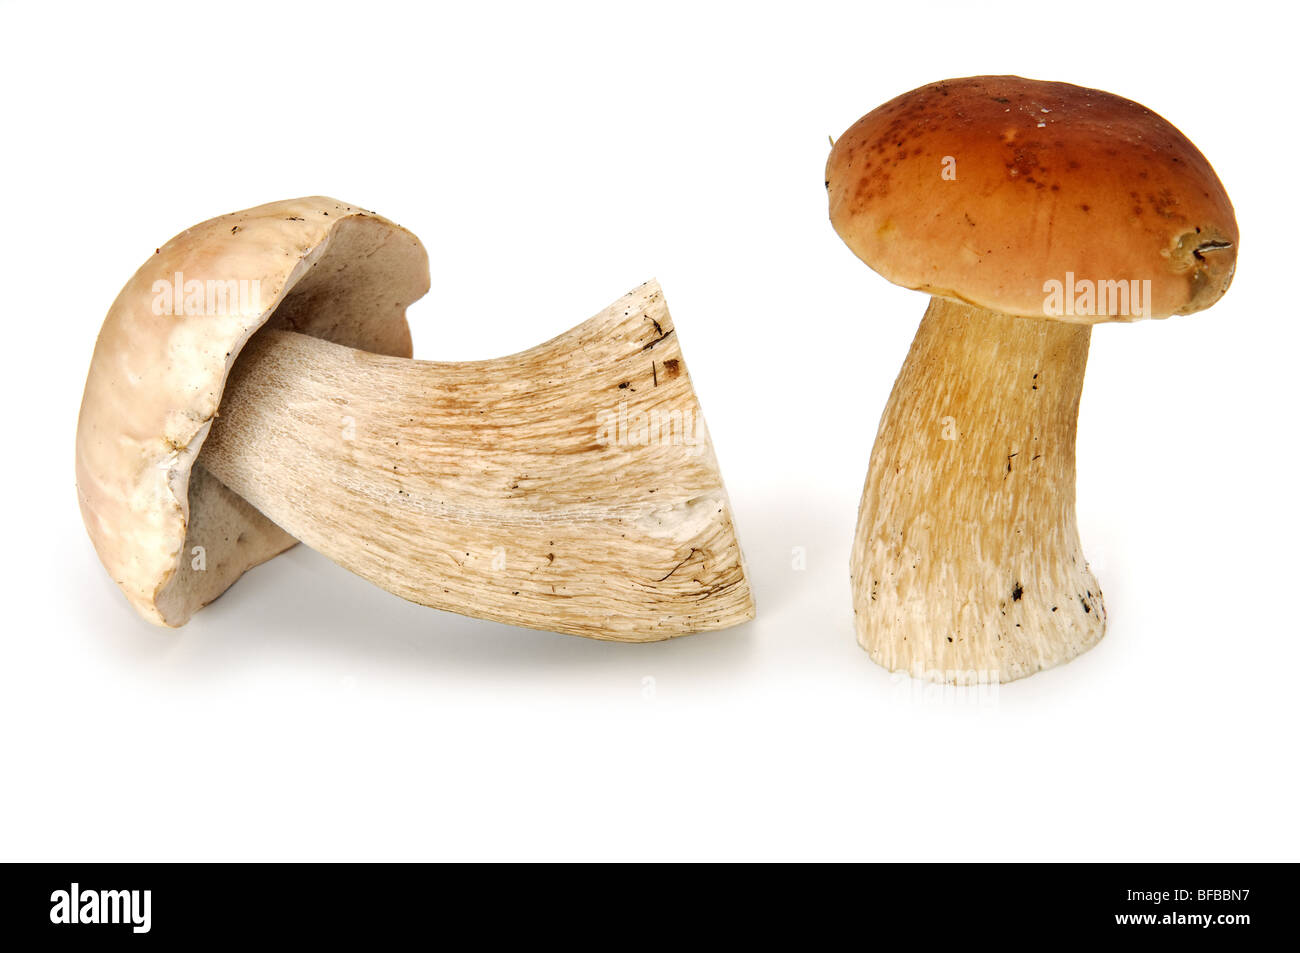 Two eatable mushrooms isolated on white - Stock Image